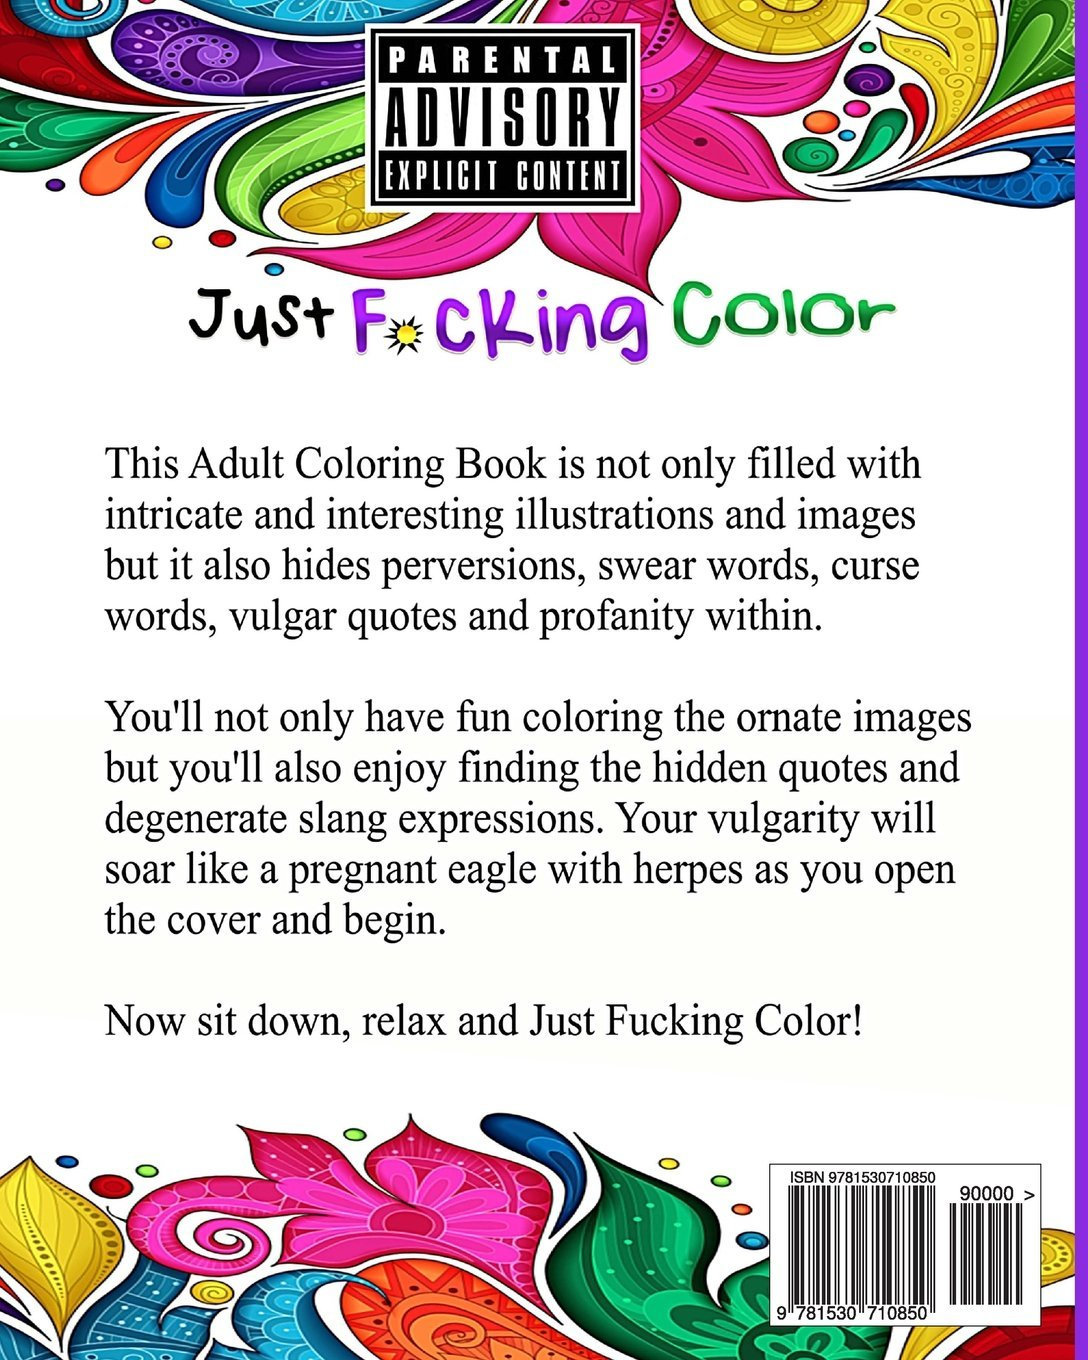 Adult coloring book with quotes - Amazon Com Just F Cking Color The Adult Coloring Book Of Hidden Swear Words Curse Words Profanity Adult Coloring Books Coloring Books For Adults